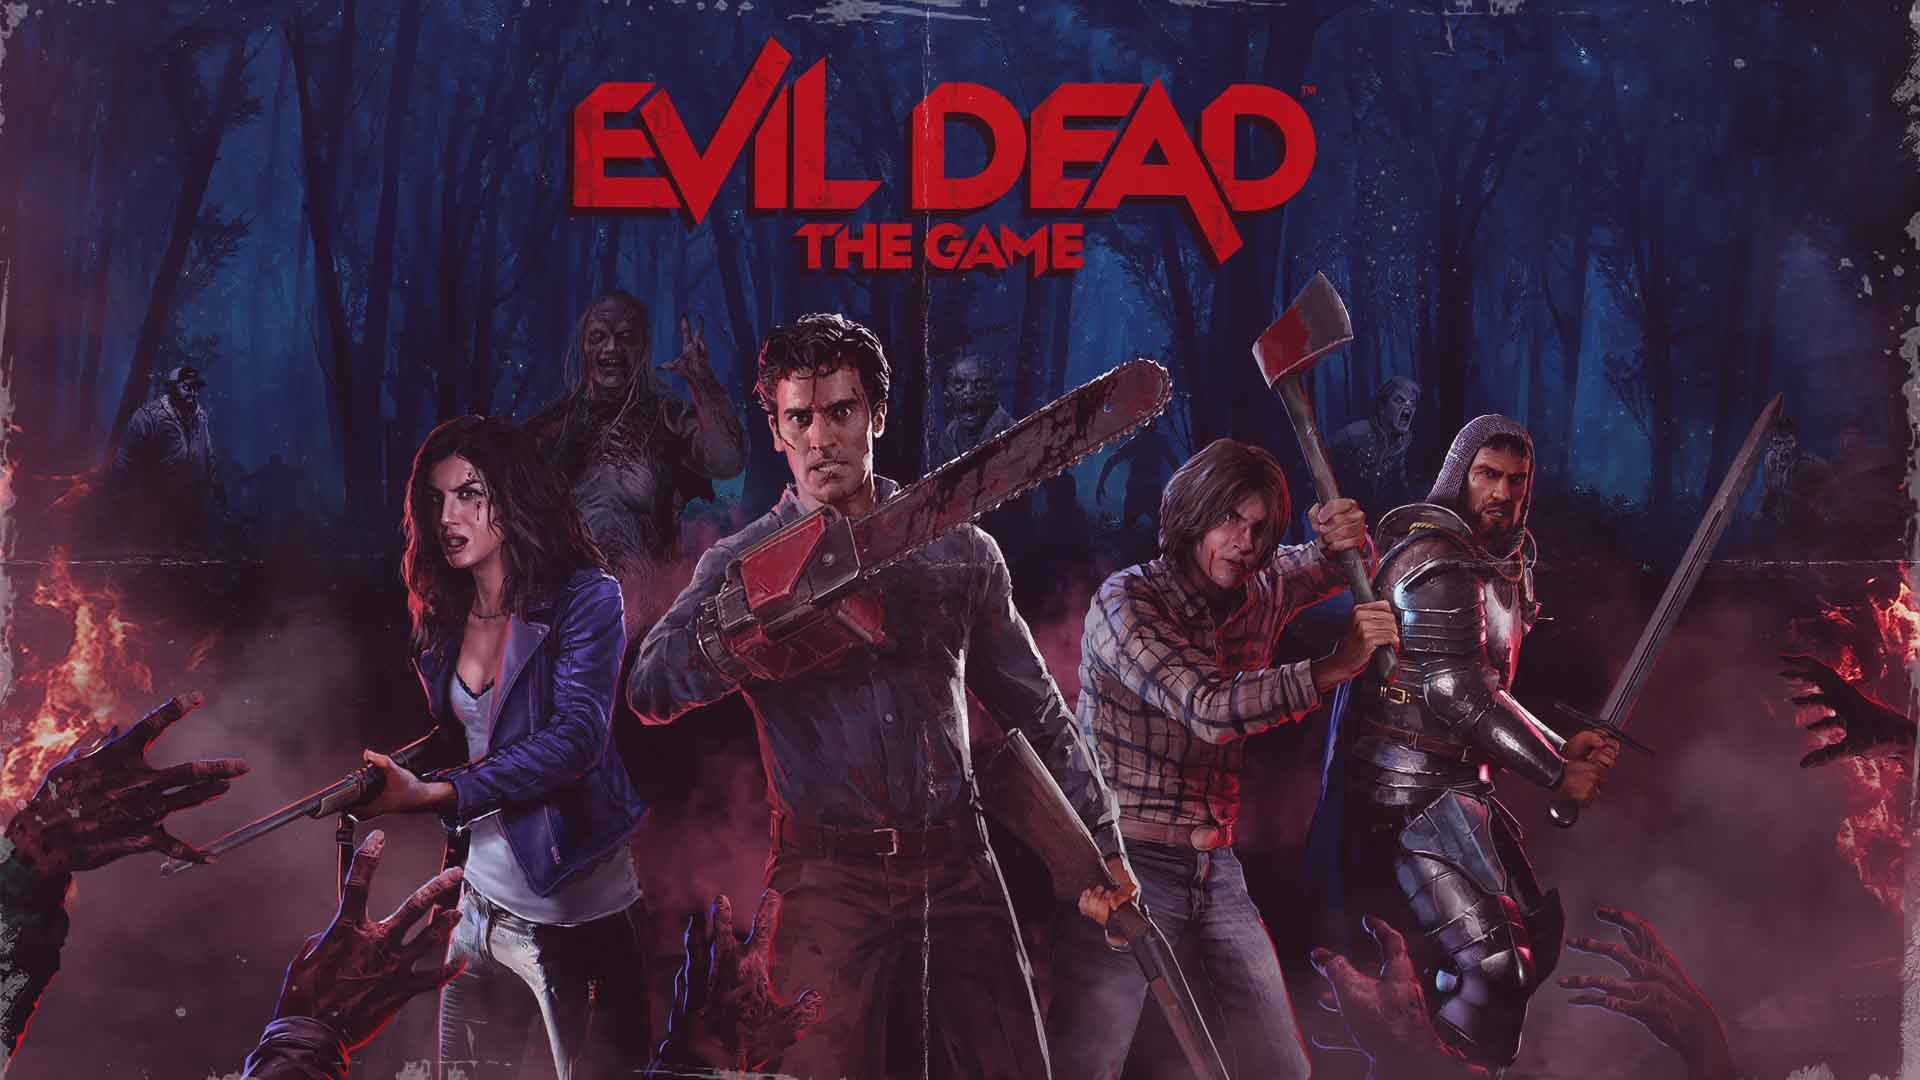 Evil Dead: The Game gameplay overview trailer